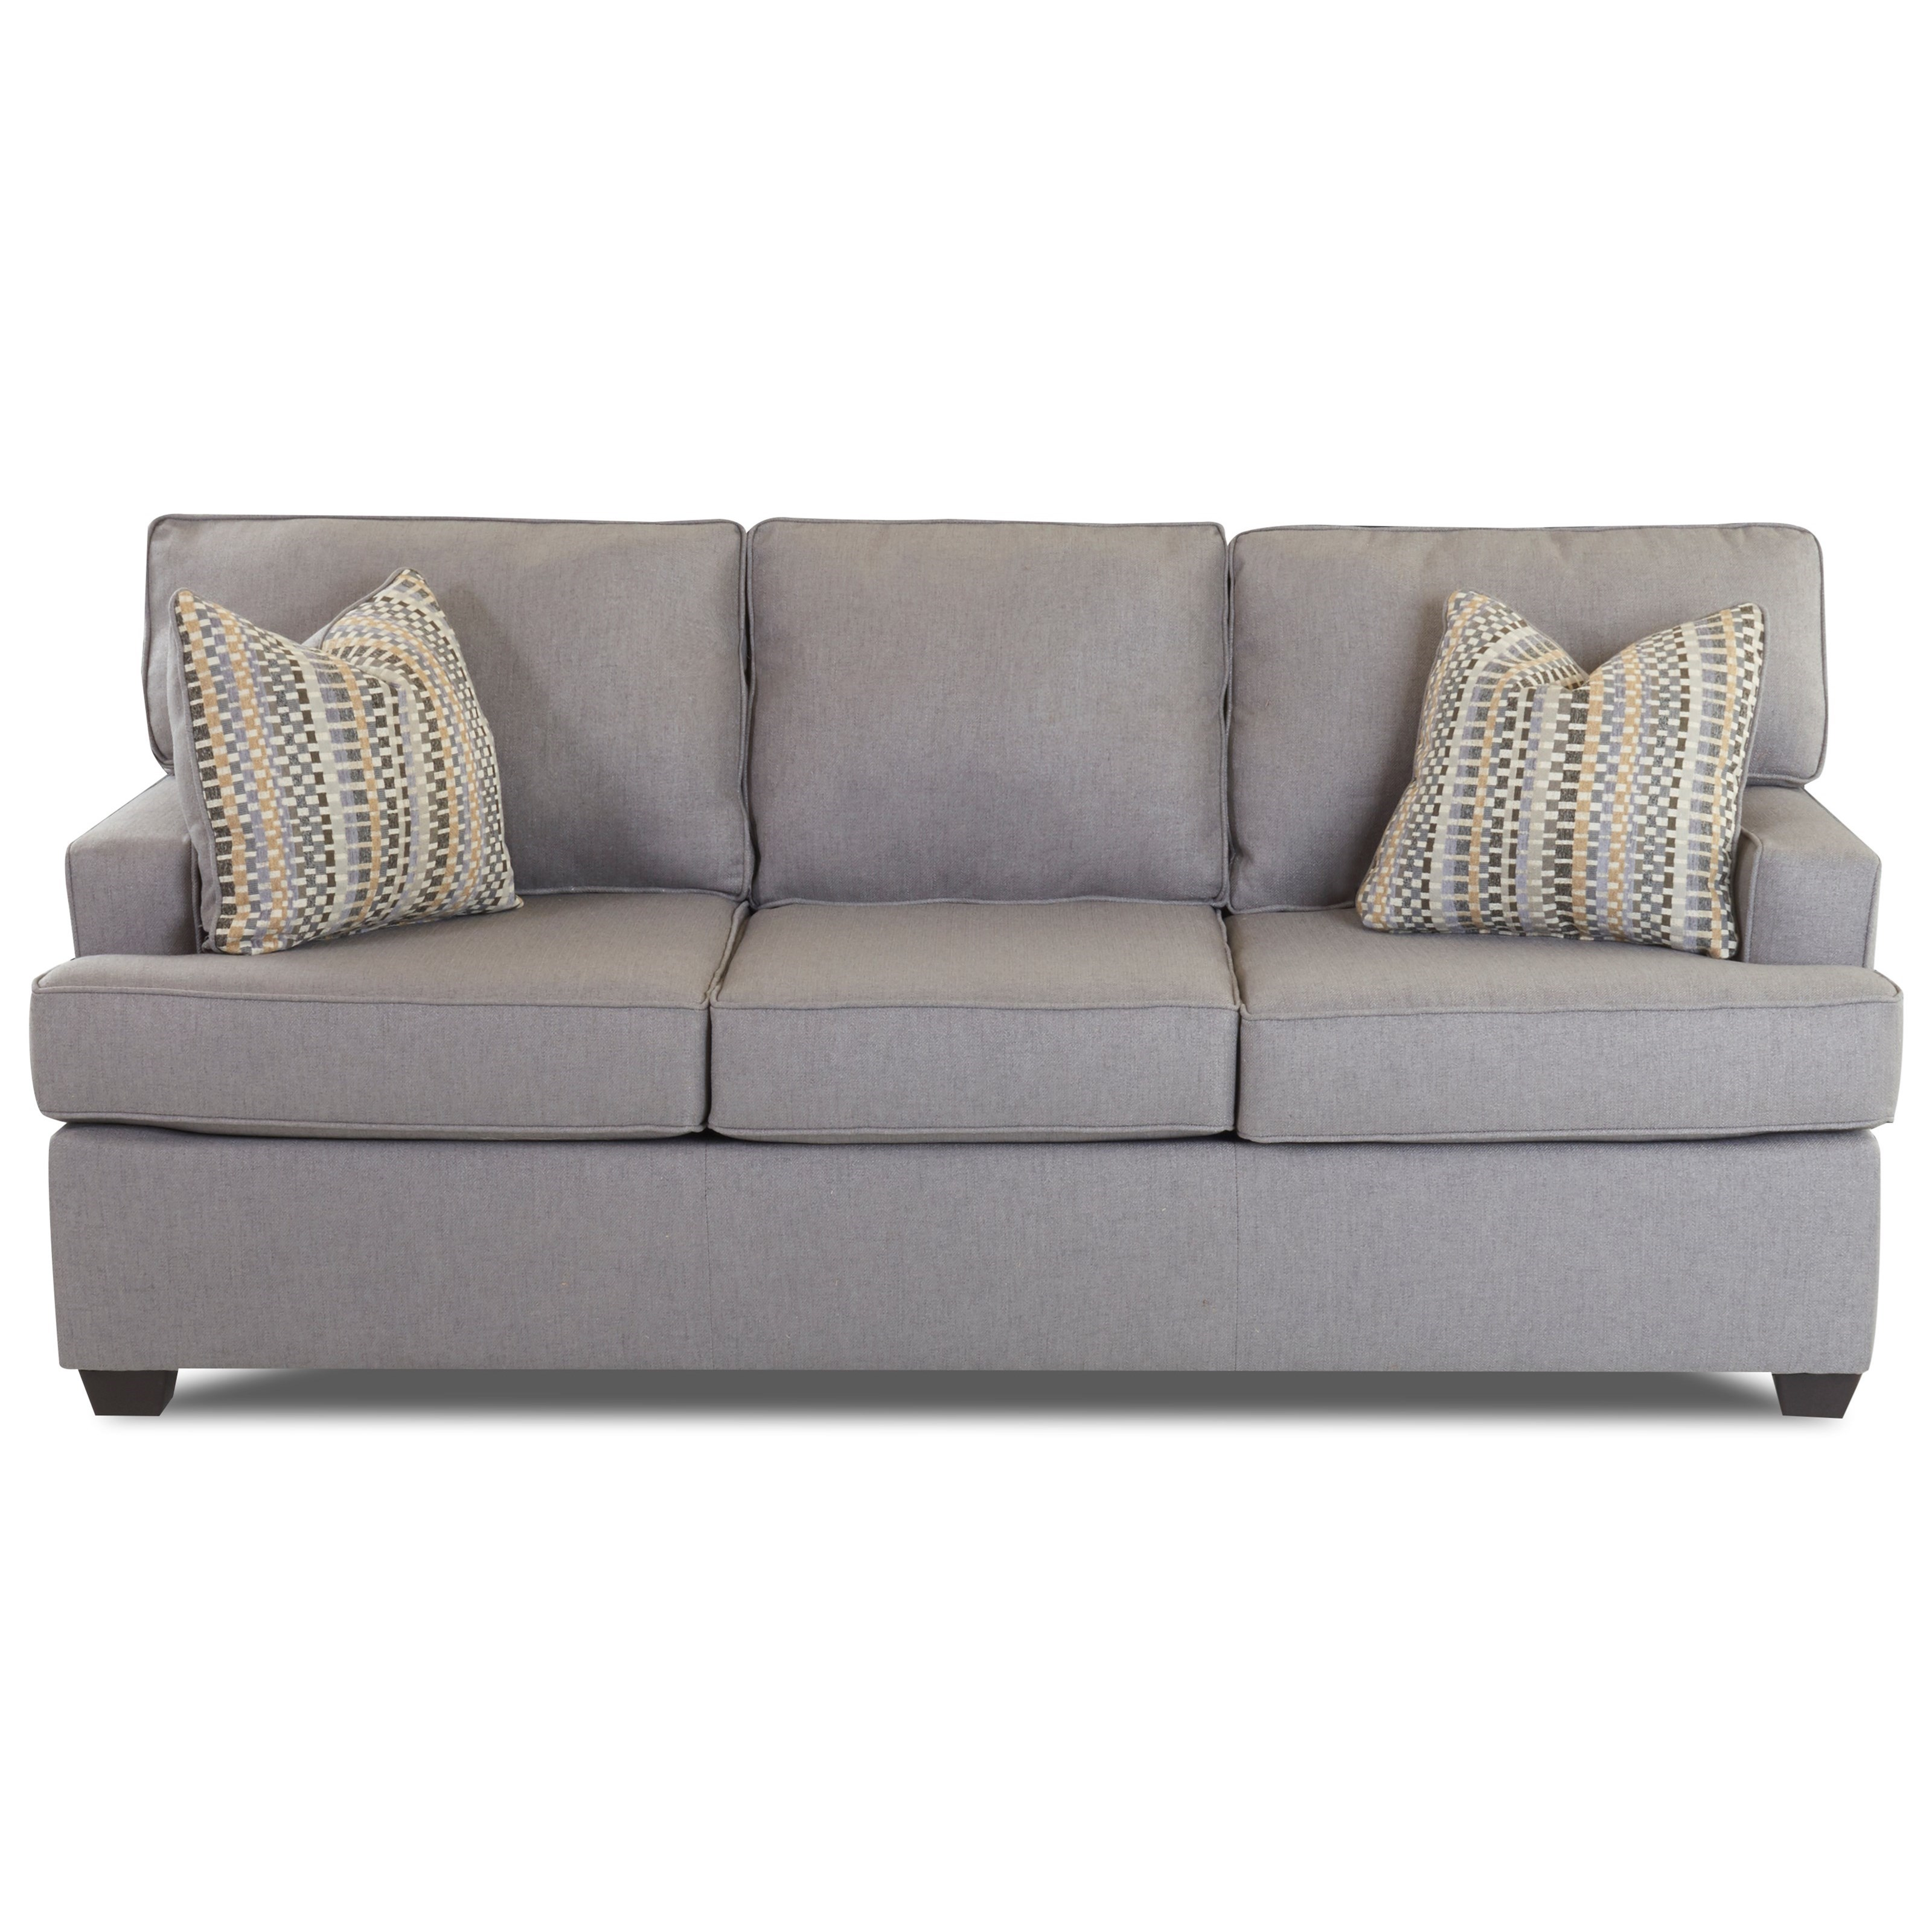 Klaussner Cruze Contemporary Sleeper Sofa With Track Arms